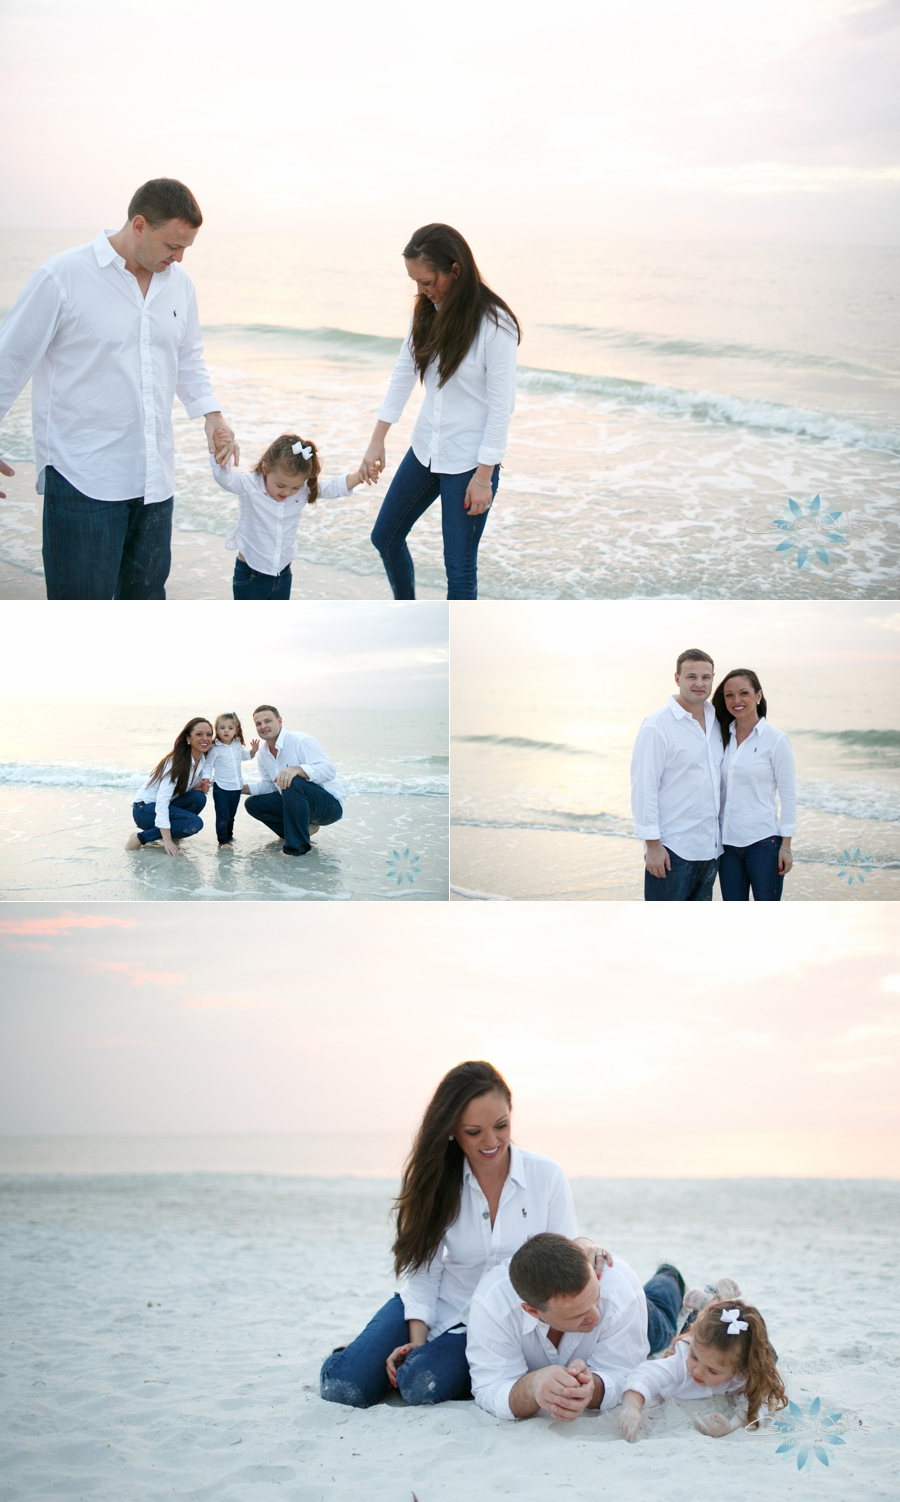 11_20_13 Clearwater Beach Family Session_0001.jpg